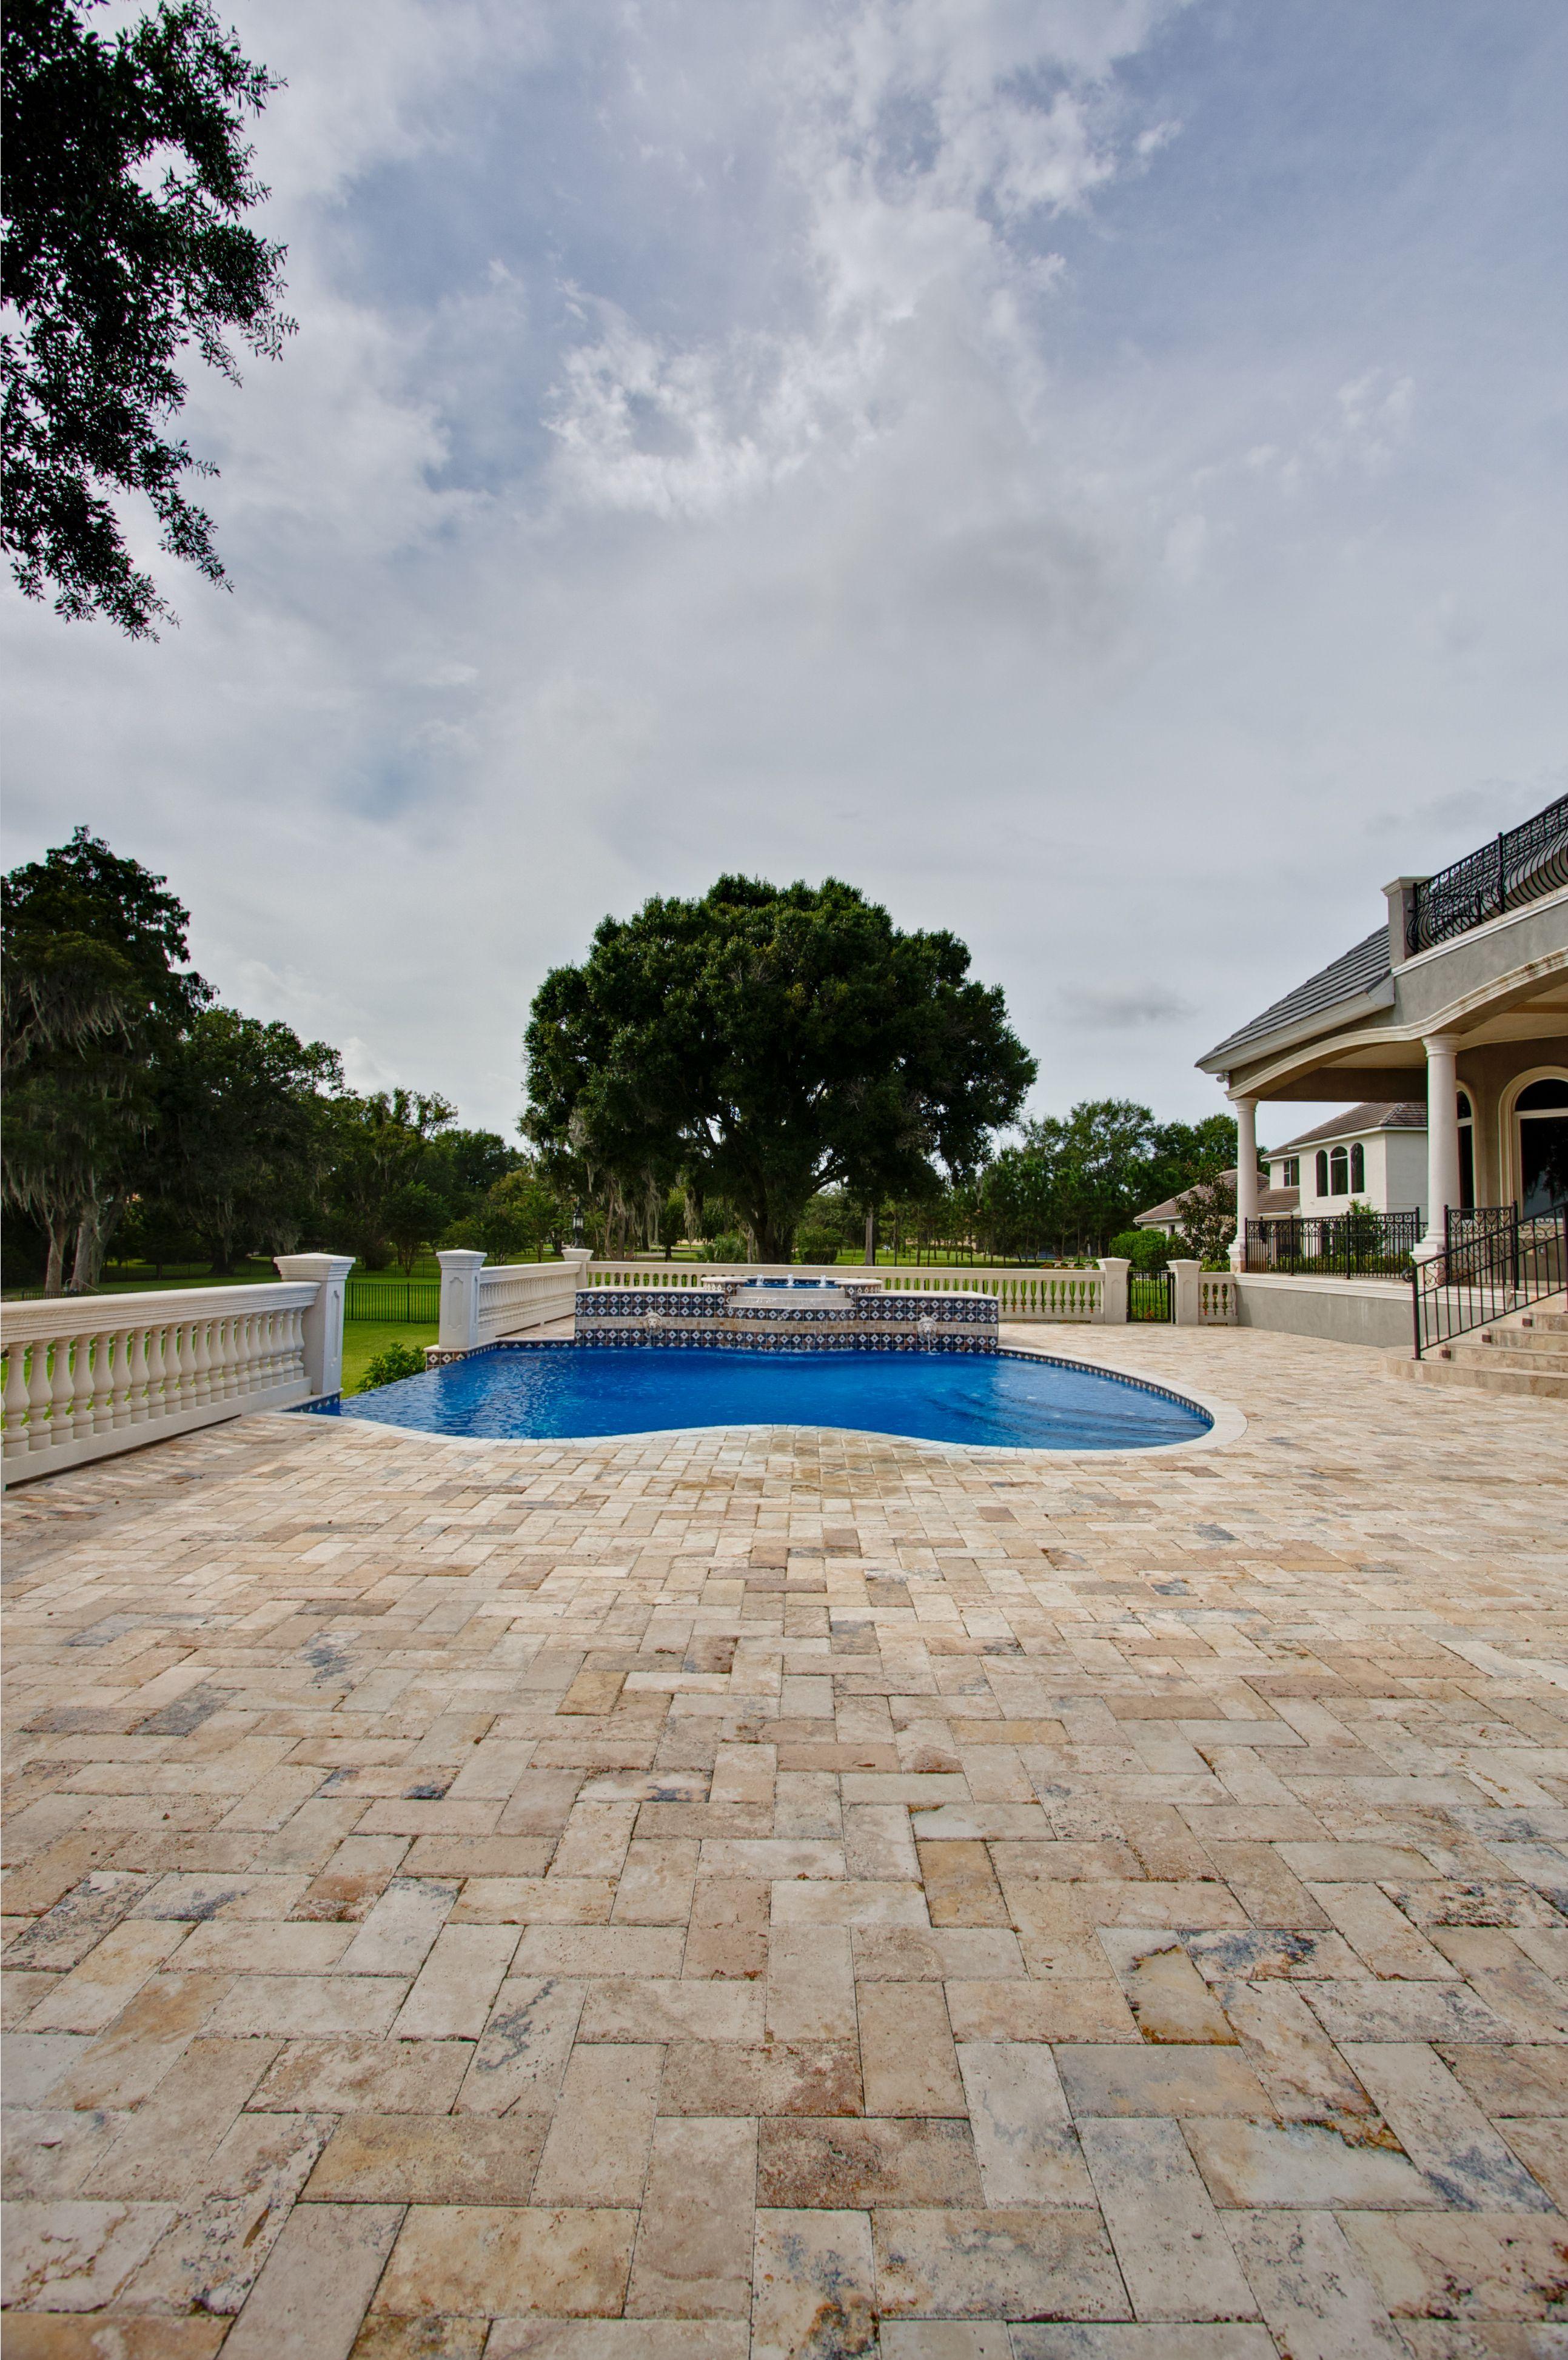 Country Classic 6x12 Chiseled Edge Pavers Visit our website for more ...